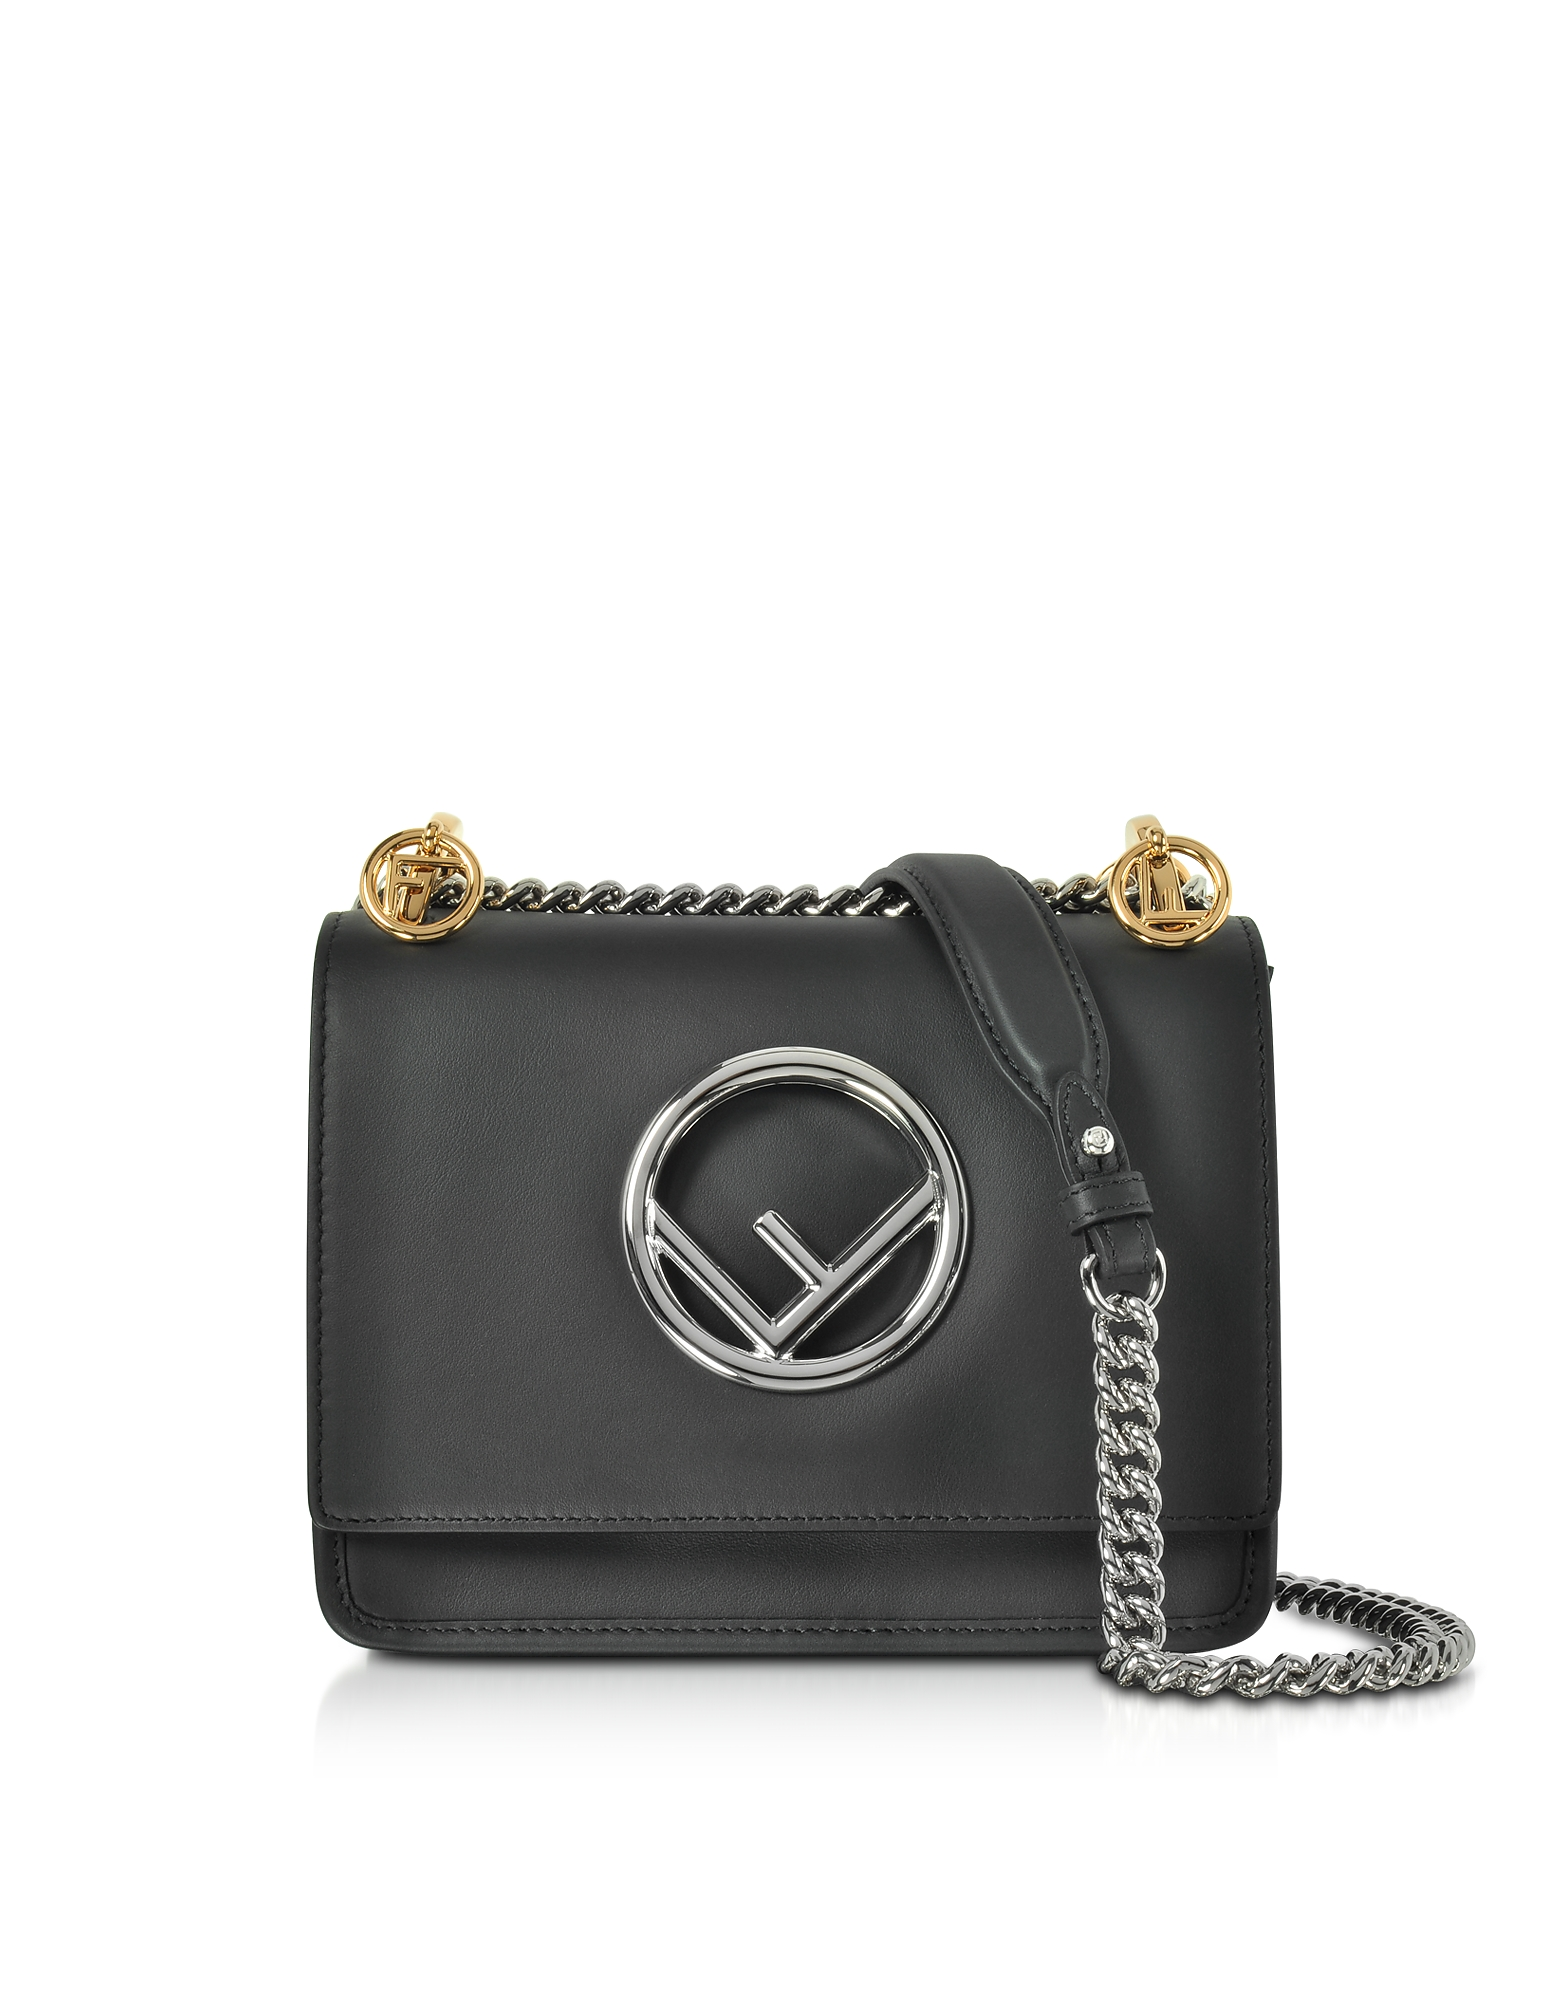 Fendi Handbags, Kan I F Small Black Leather Shoulder Bag